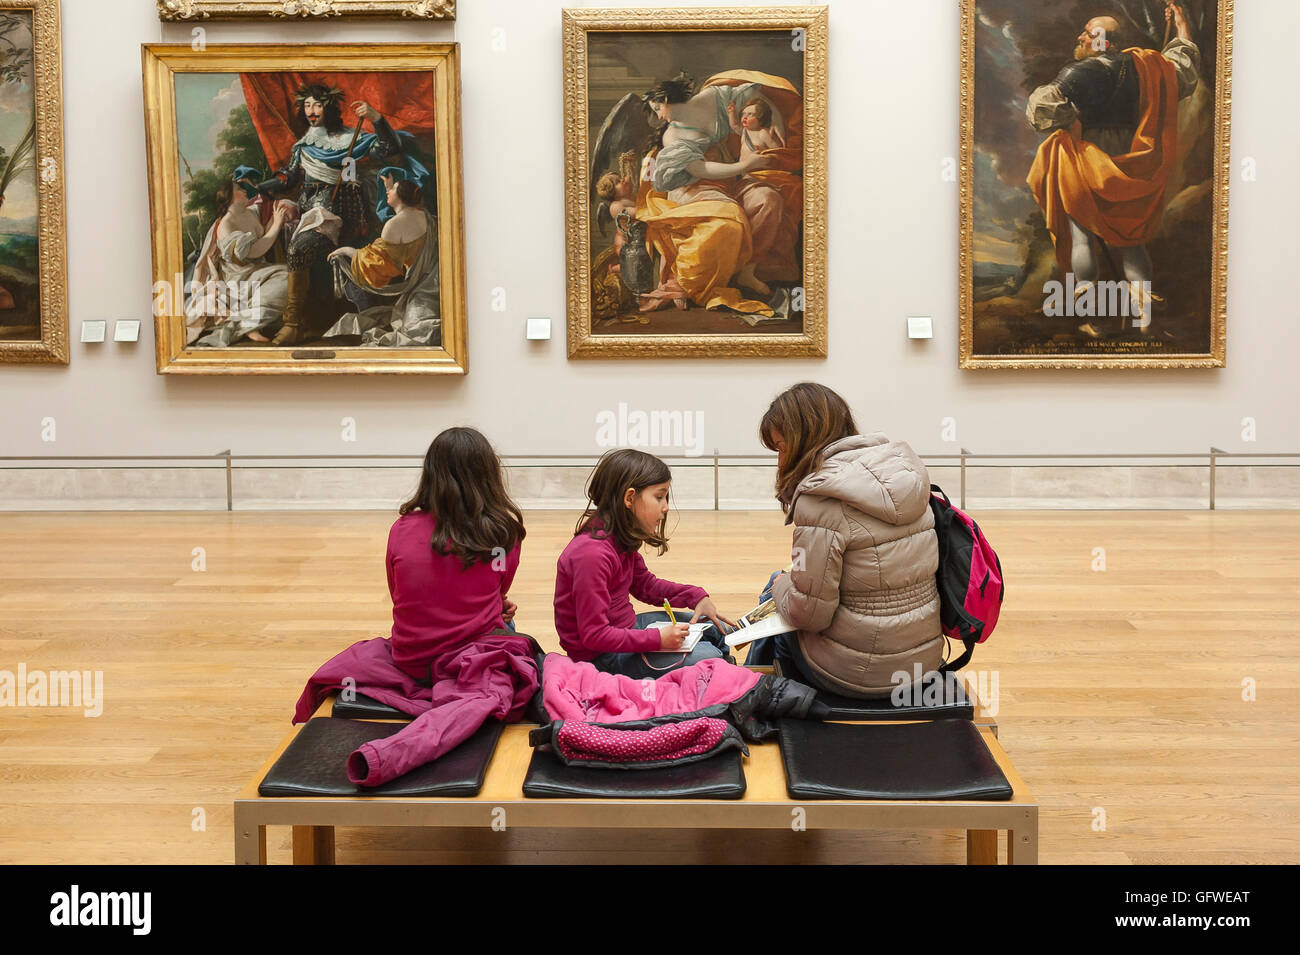 Children art gallery, a mother and her two daughters view 17th century art paintings in the Louvre Museum in Paris, - Stock Image